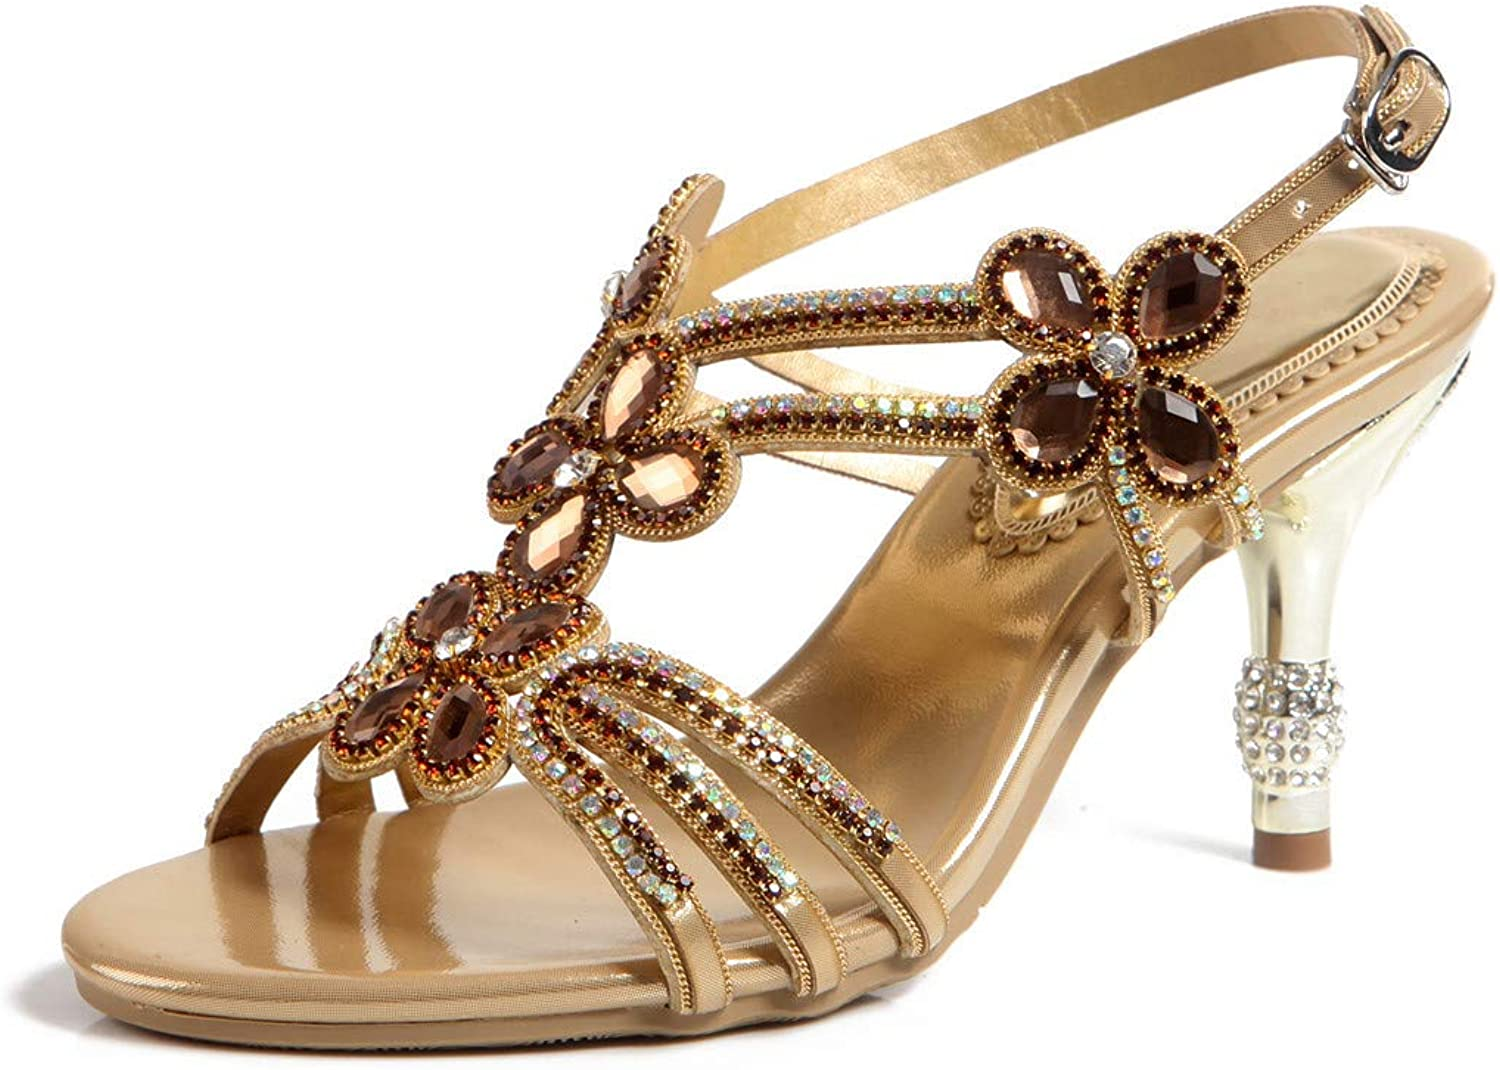 LLBubble Stiletto Heels Rhinestone Sandals for Wedding Open Toe Ankle Buckle Strap Leather Prom Evening Party Dress Sandals ZX-L006